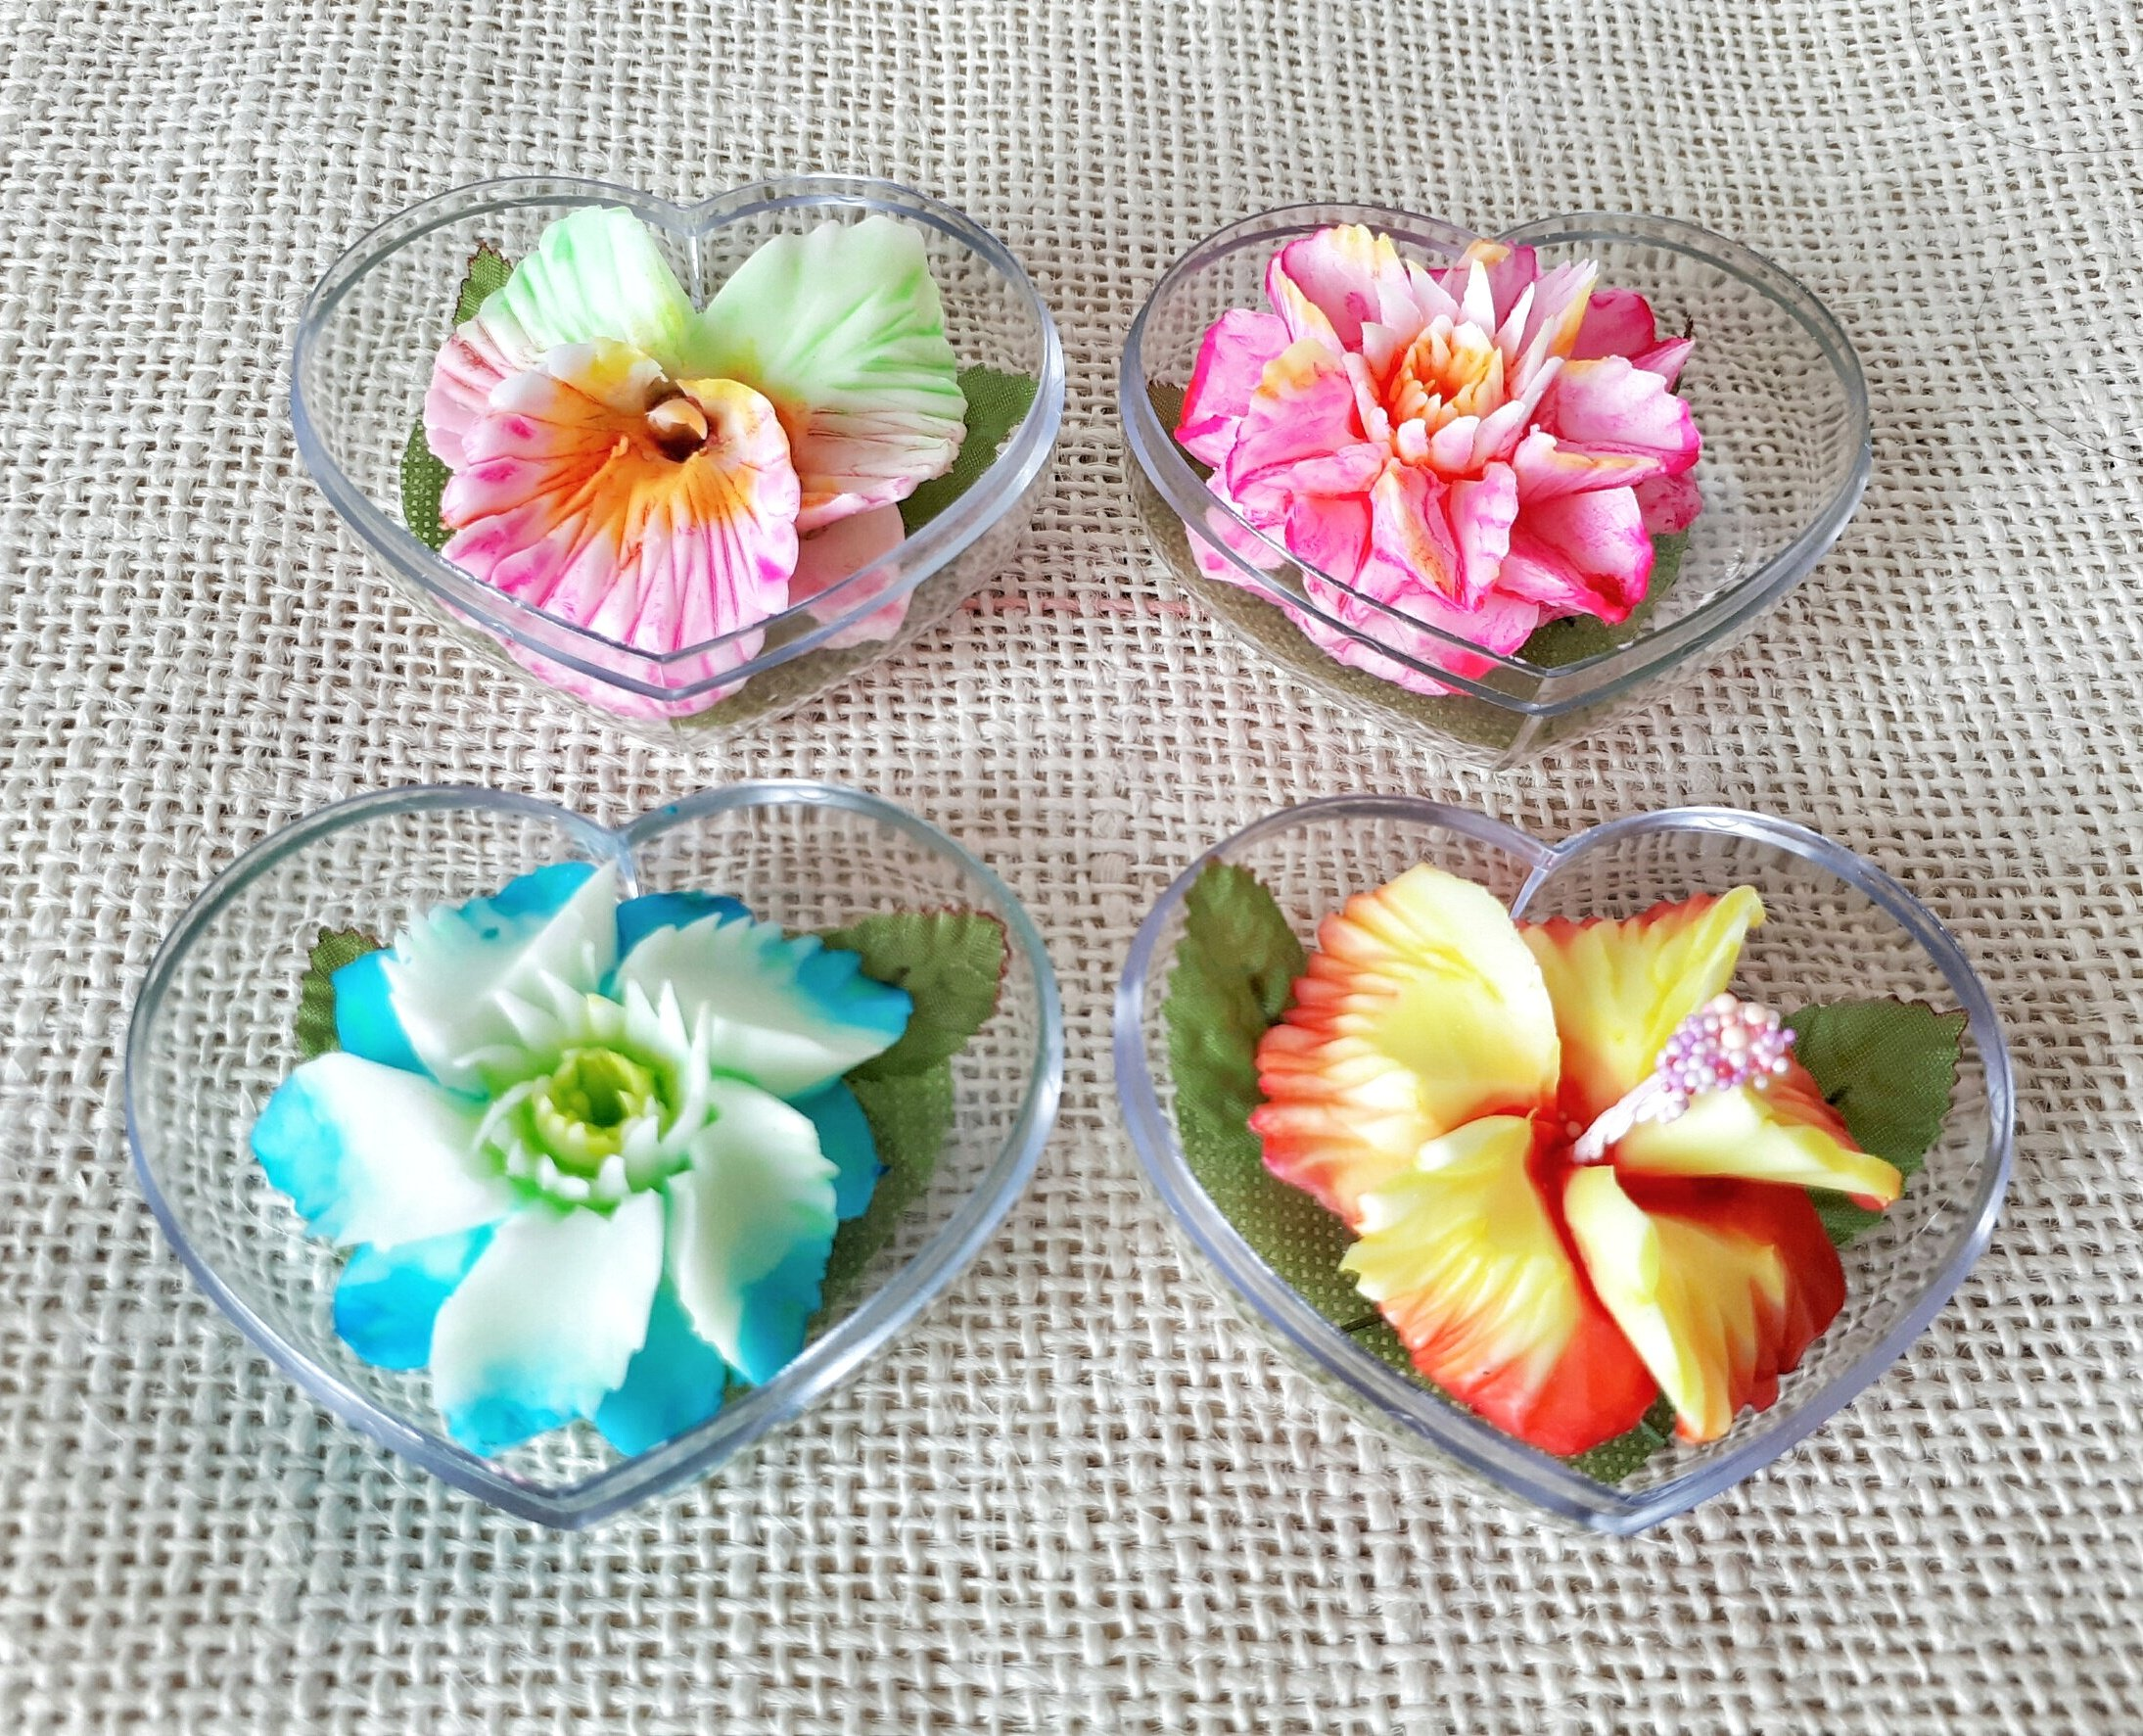 Bright & Colorful Flower Set of 4 Hand Carved Decorative Soaps with Jasmine Aroma Essential Oil, Handmade Soap Carving by Thai Artisan